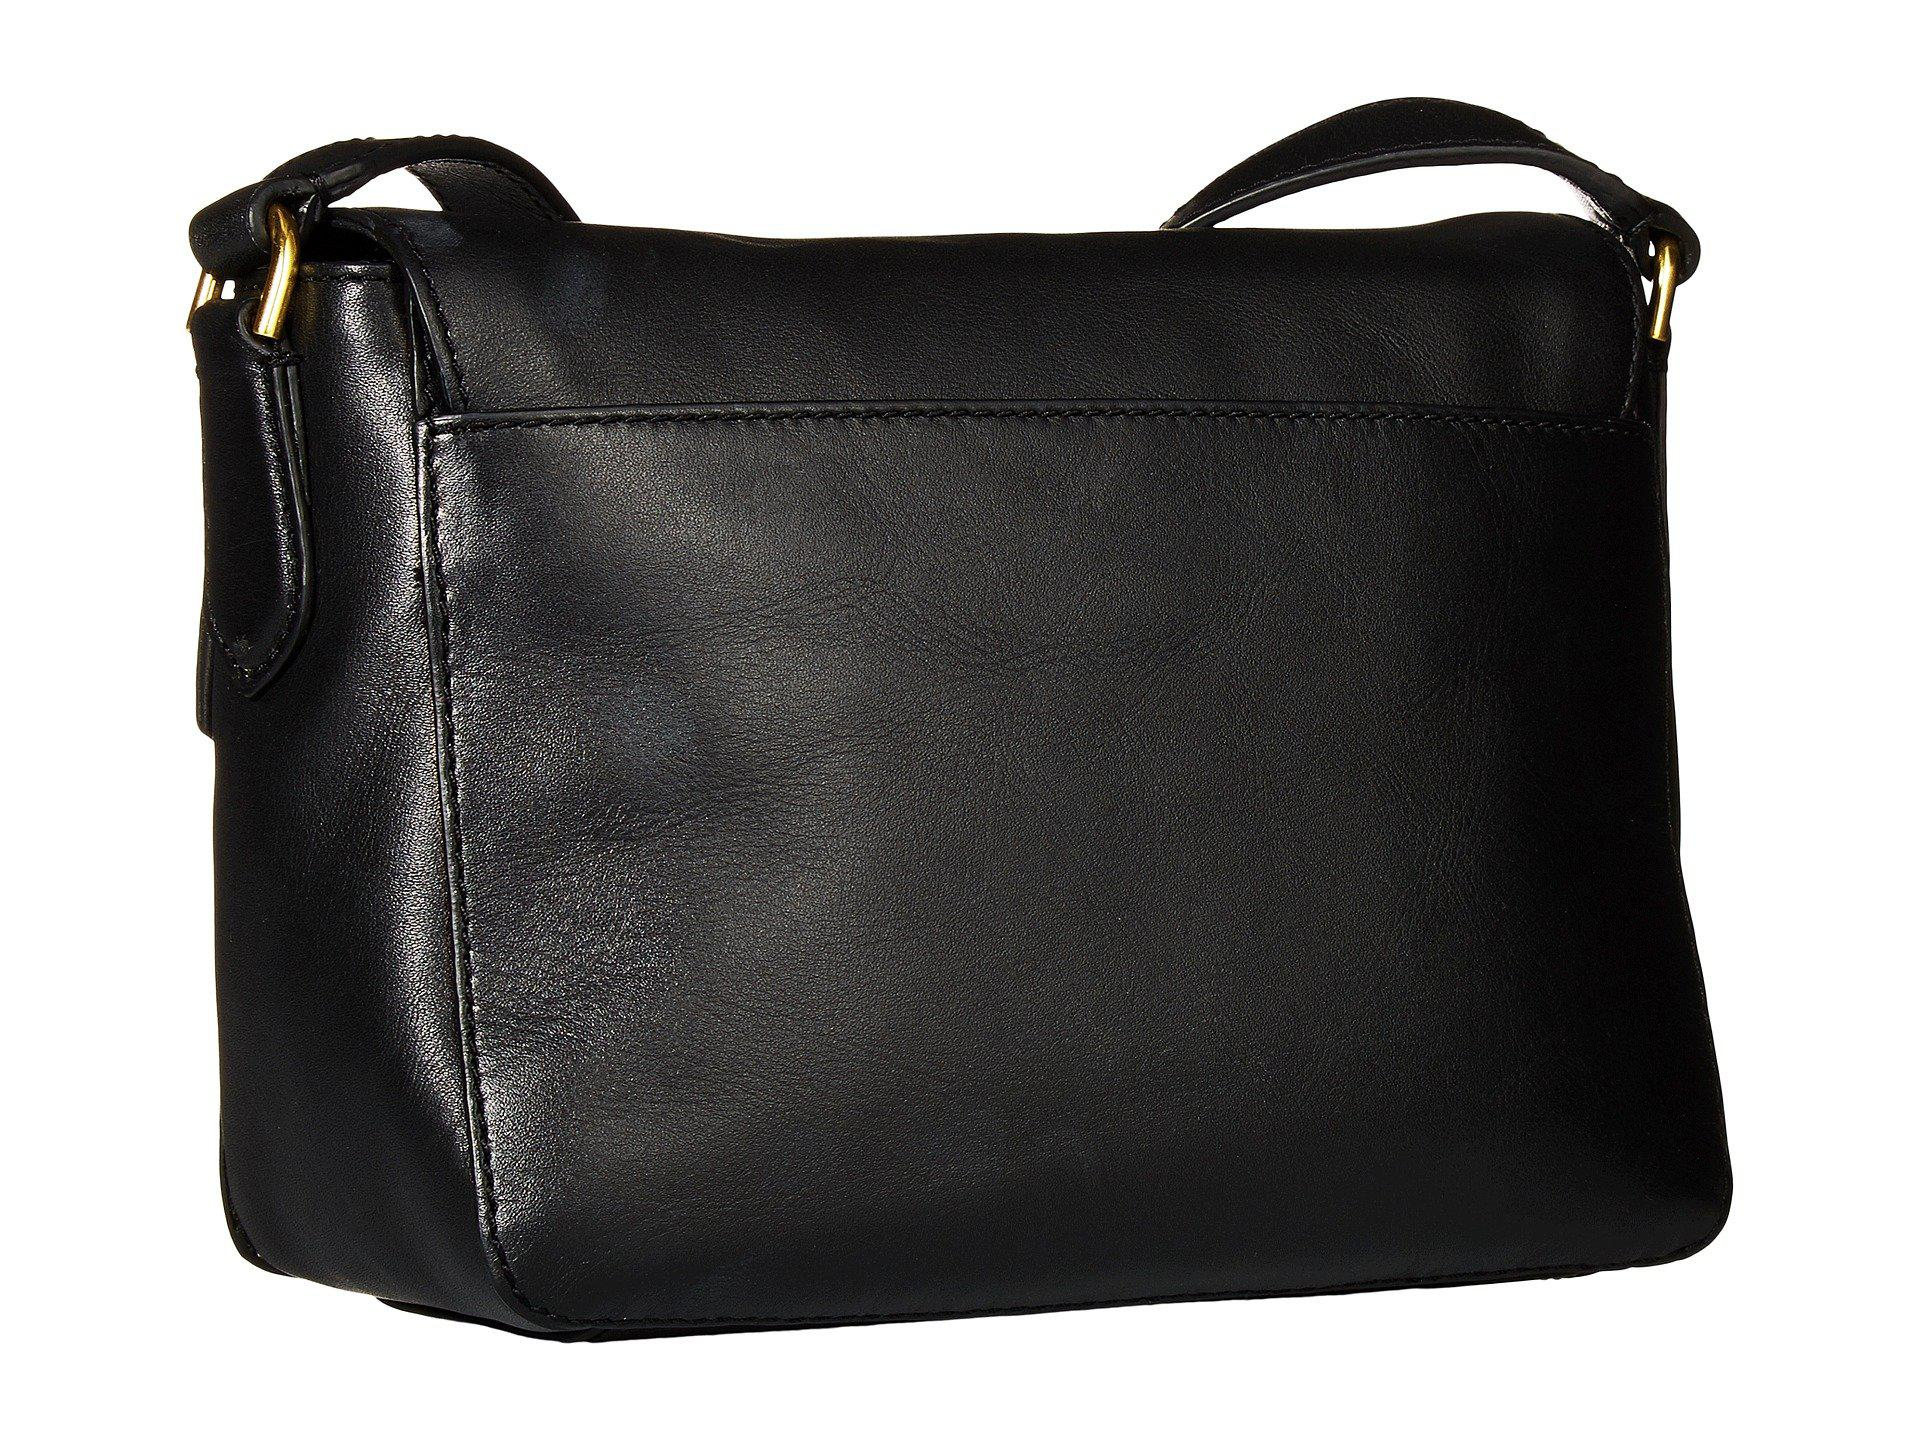 ad95972eaef1 Cole Haan - Black Allanna Crossbody - Lyst. View fullscreen